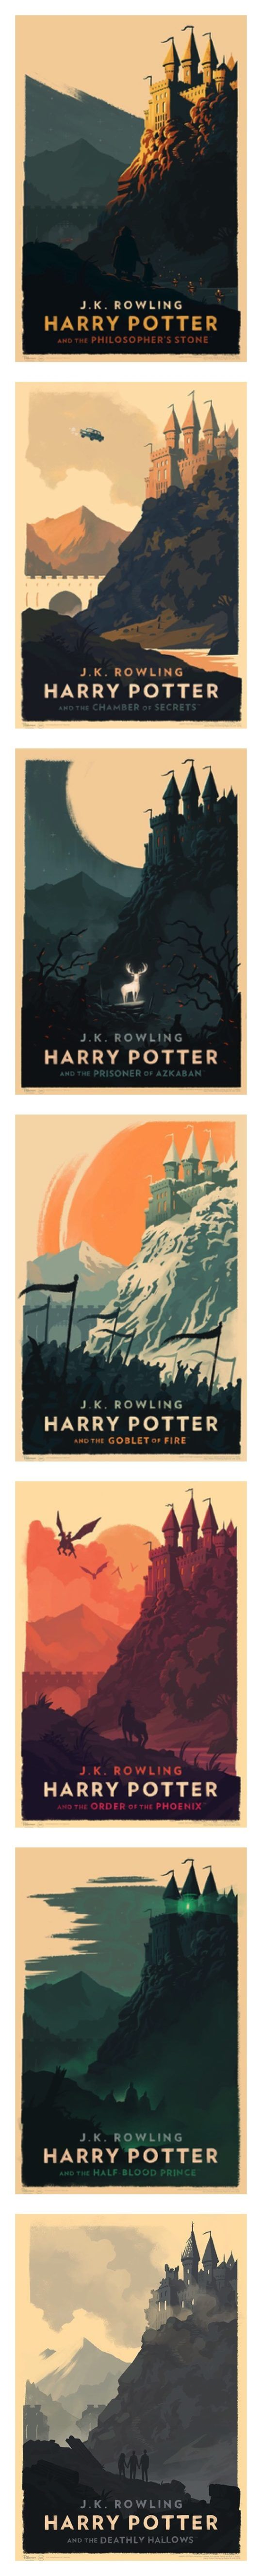 Fantastic, vintage-looking Harry Potter posters by Olly Moss